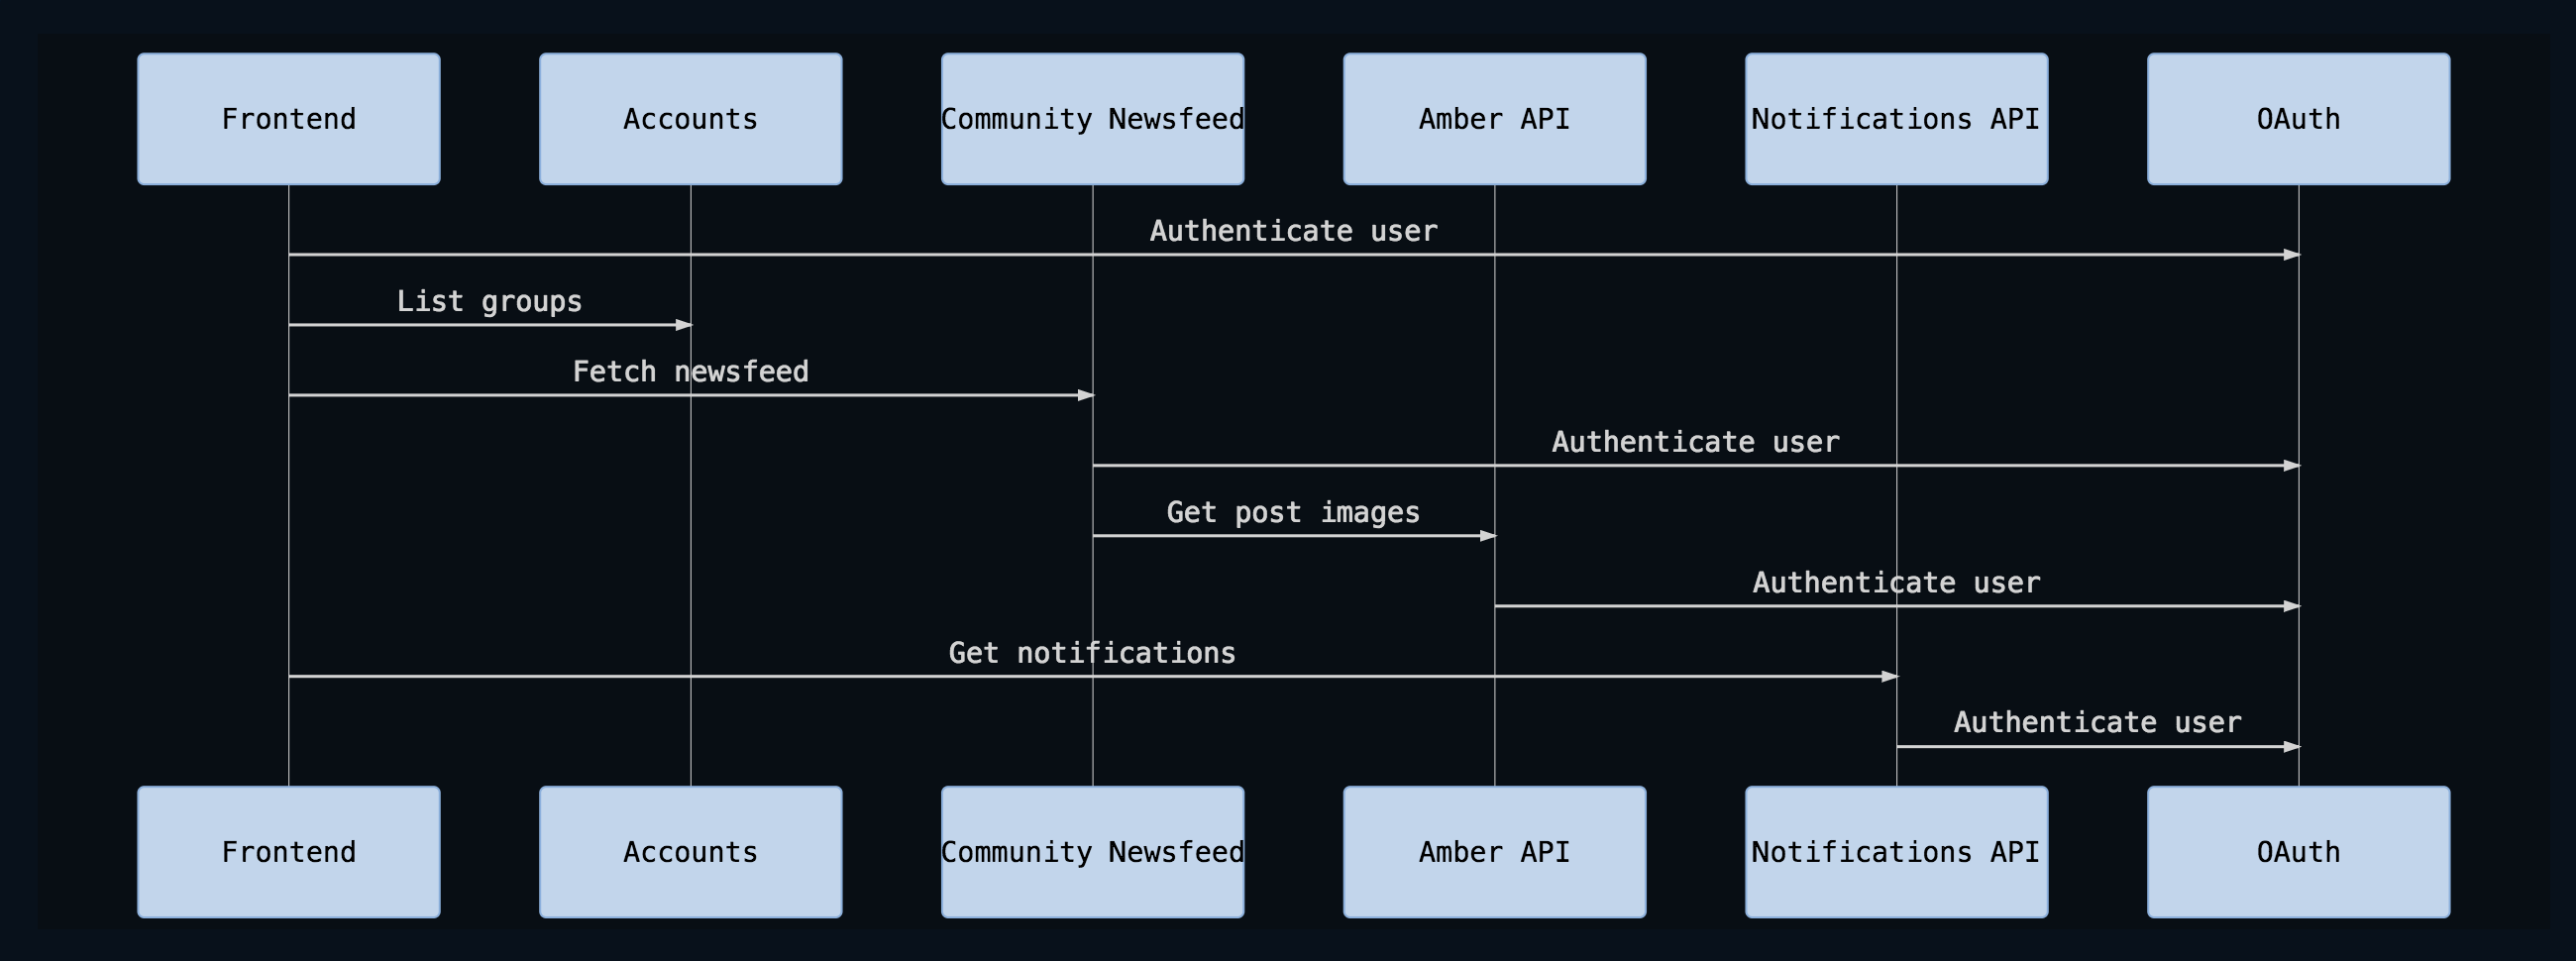 mermaid sequenceDiagram 	participant Frontend 	participant Accounts 	participant Community Newsfeed 	participant Amber API 	participant Notifications API 	participant OAuth 	Frontend->> OAuth: Authenticate user 	Frontend->> Accounts: List groups 	Frontend->> Community Newsfeed: Fetch newsfeed 	Community Newsfeed->> OAuth: Authenticate user 	Community Newsfeed->> Amber API: Get post images 	Amber API->> OAuth: Authenticate user 	Frontend->> Notifications API: Get notifications 	Notifications API->> OAuth: Authenticate user